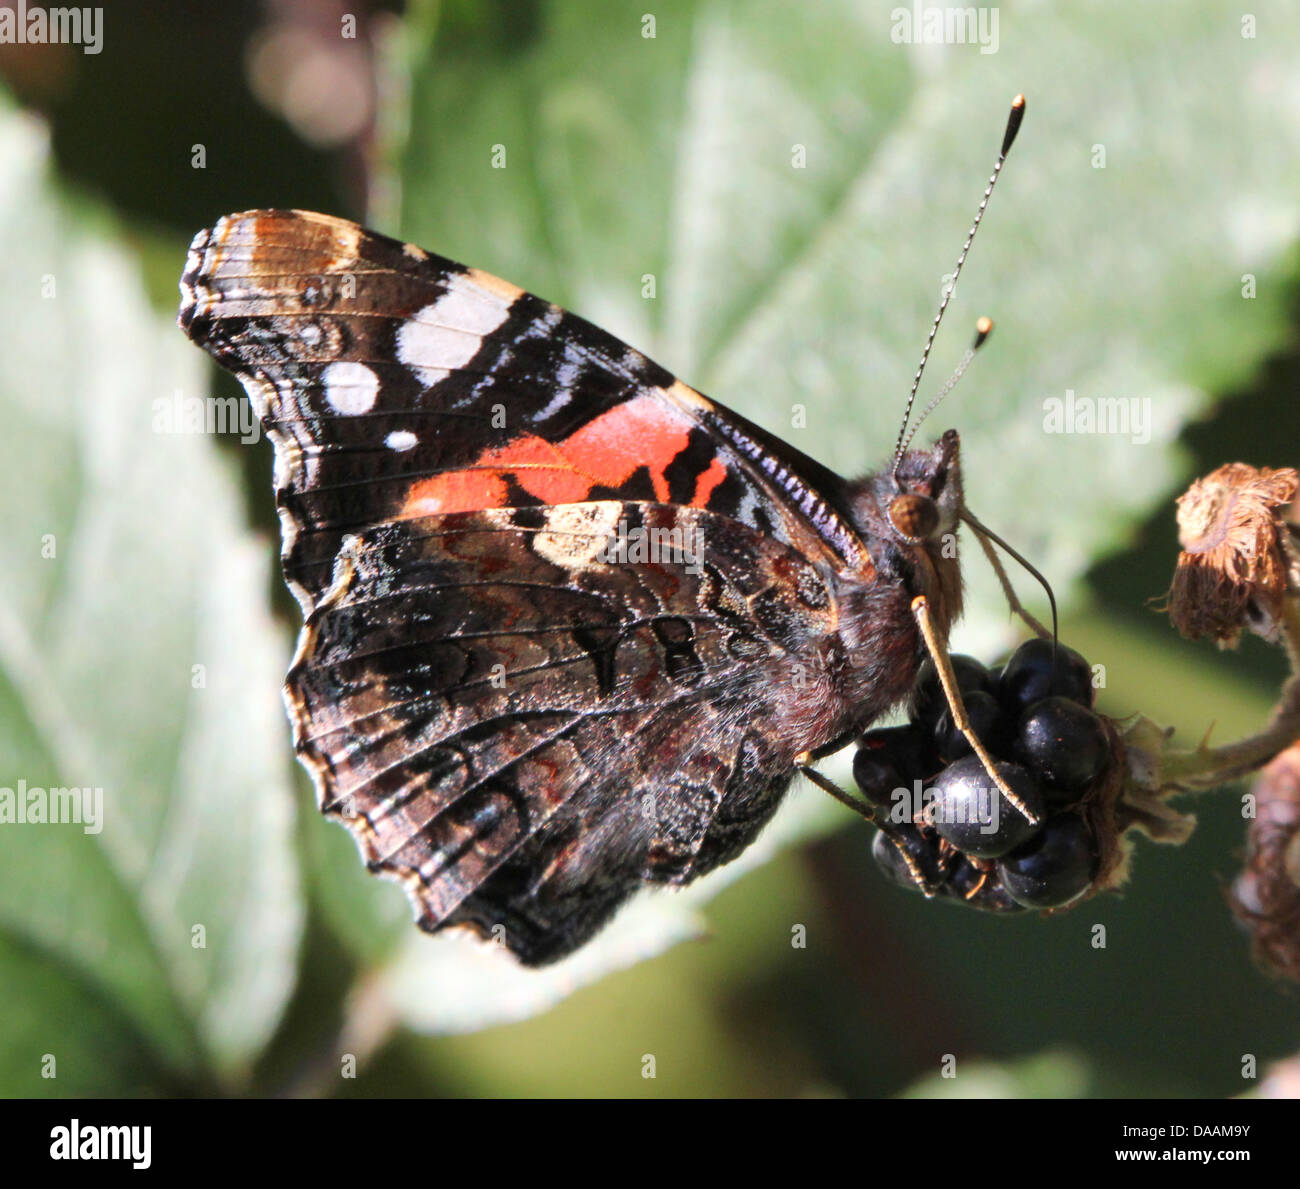 Red admiral butterfly (vanessa atalanta) feeding on a blackberry - Stock Image